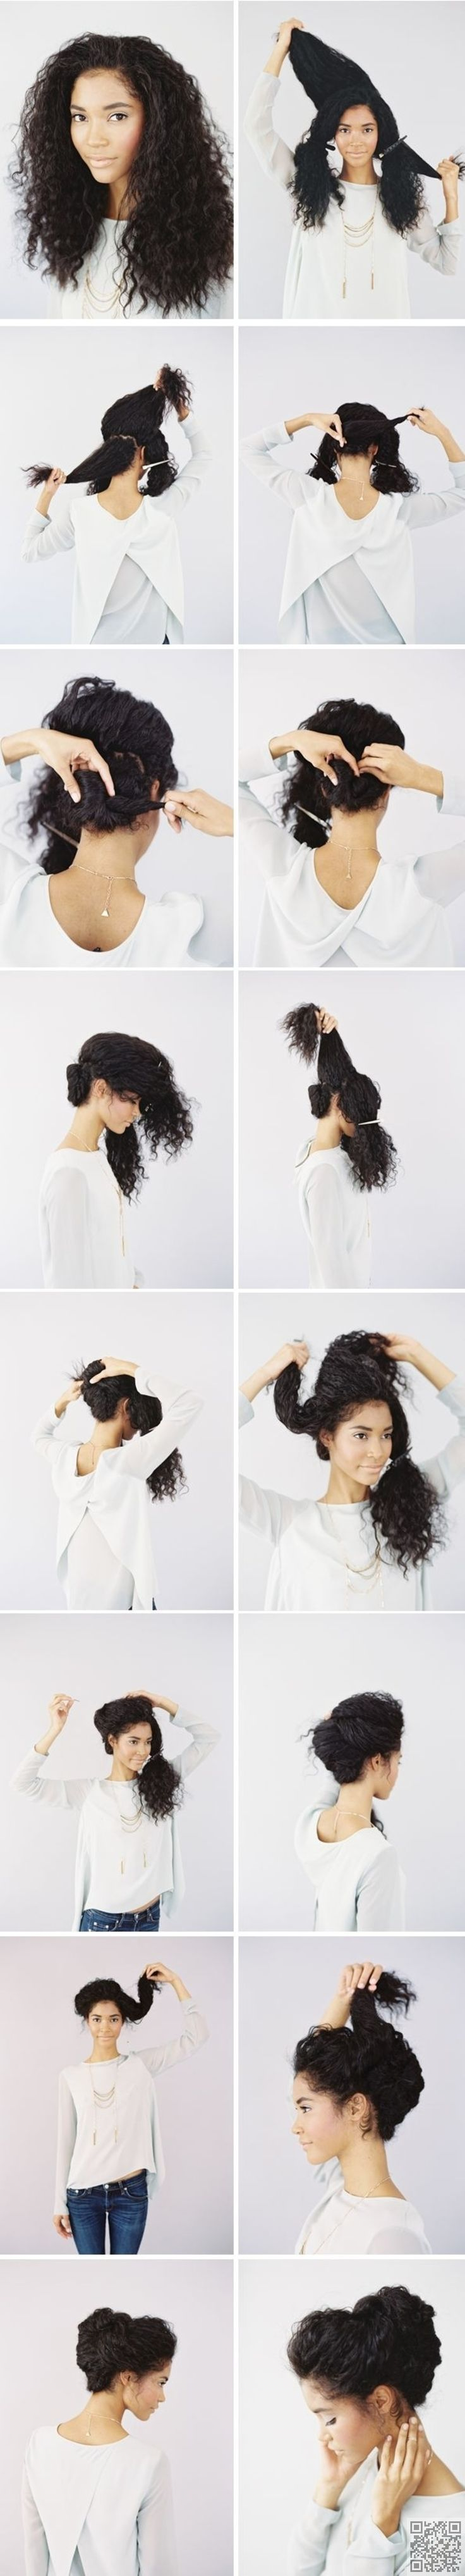 136 best mami traje images on Pinterest | Hairstyles, Hair and Headgear